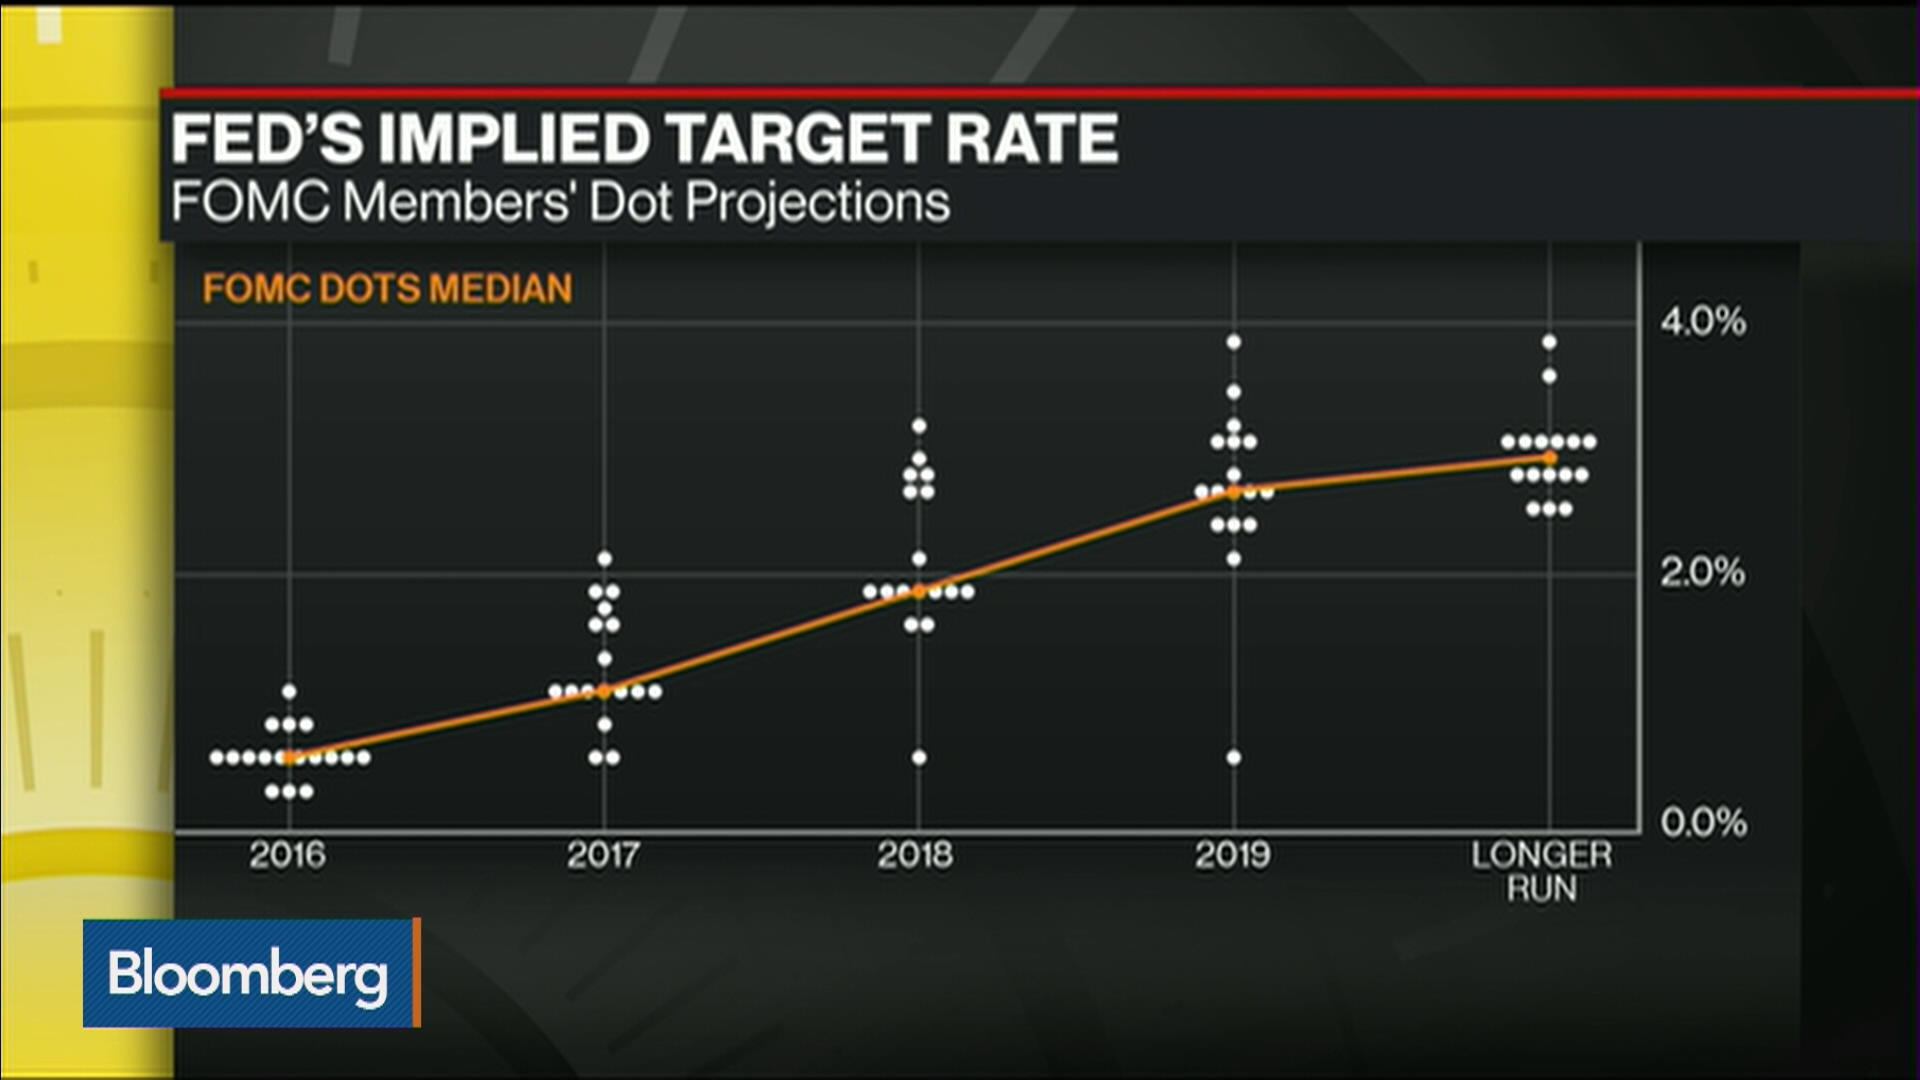 https://www.bloomberg.com/news/videos/2016-09-30/a-continuing ... on